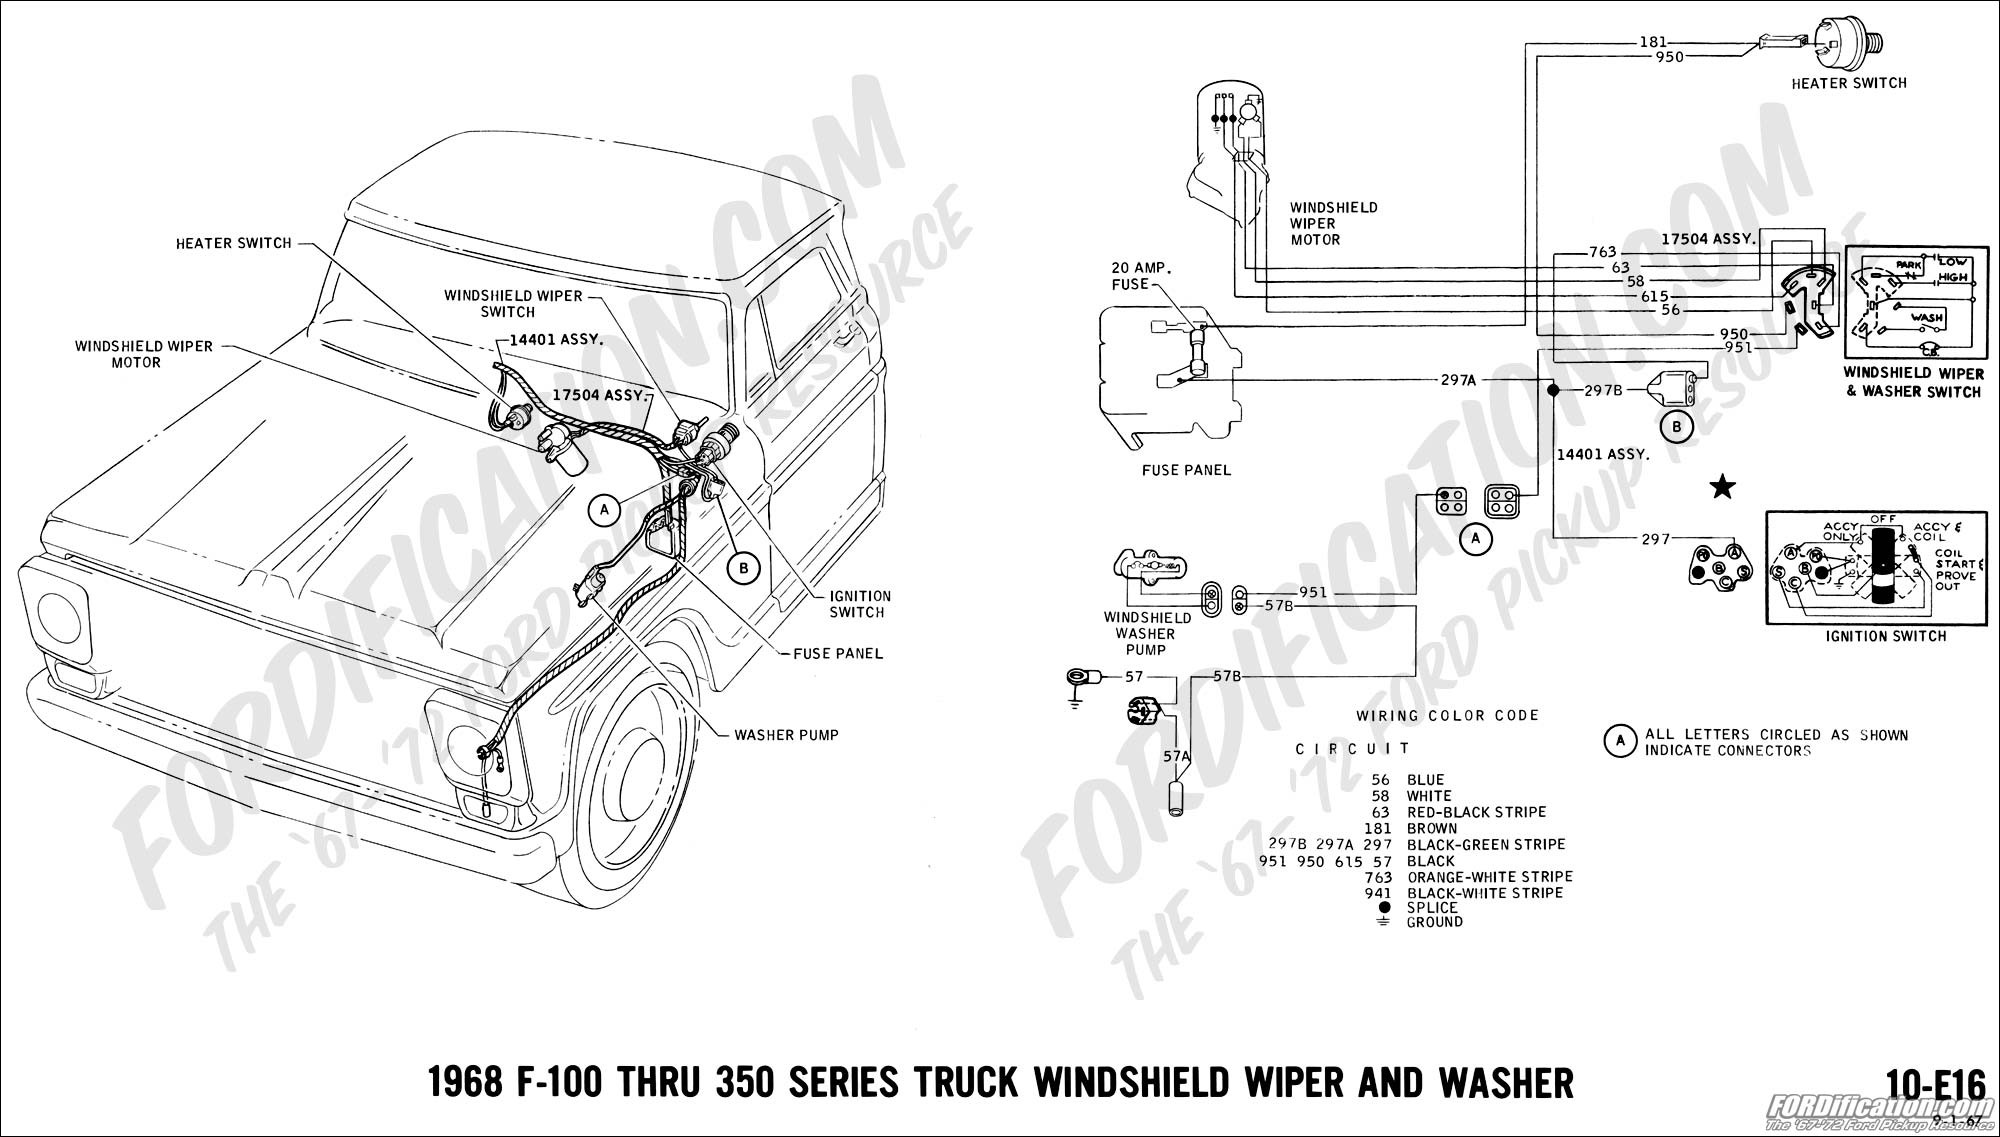 Ford 302 Engine Diagram ford Truck Technical Drawings and Schematics Section H Wiring Of Ford 302 Engine Diagram